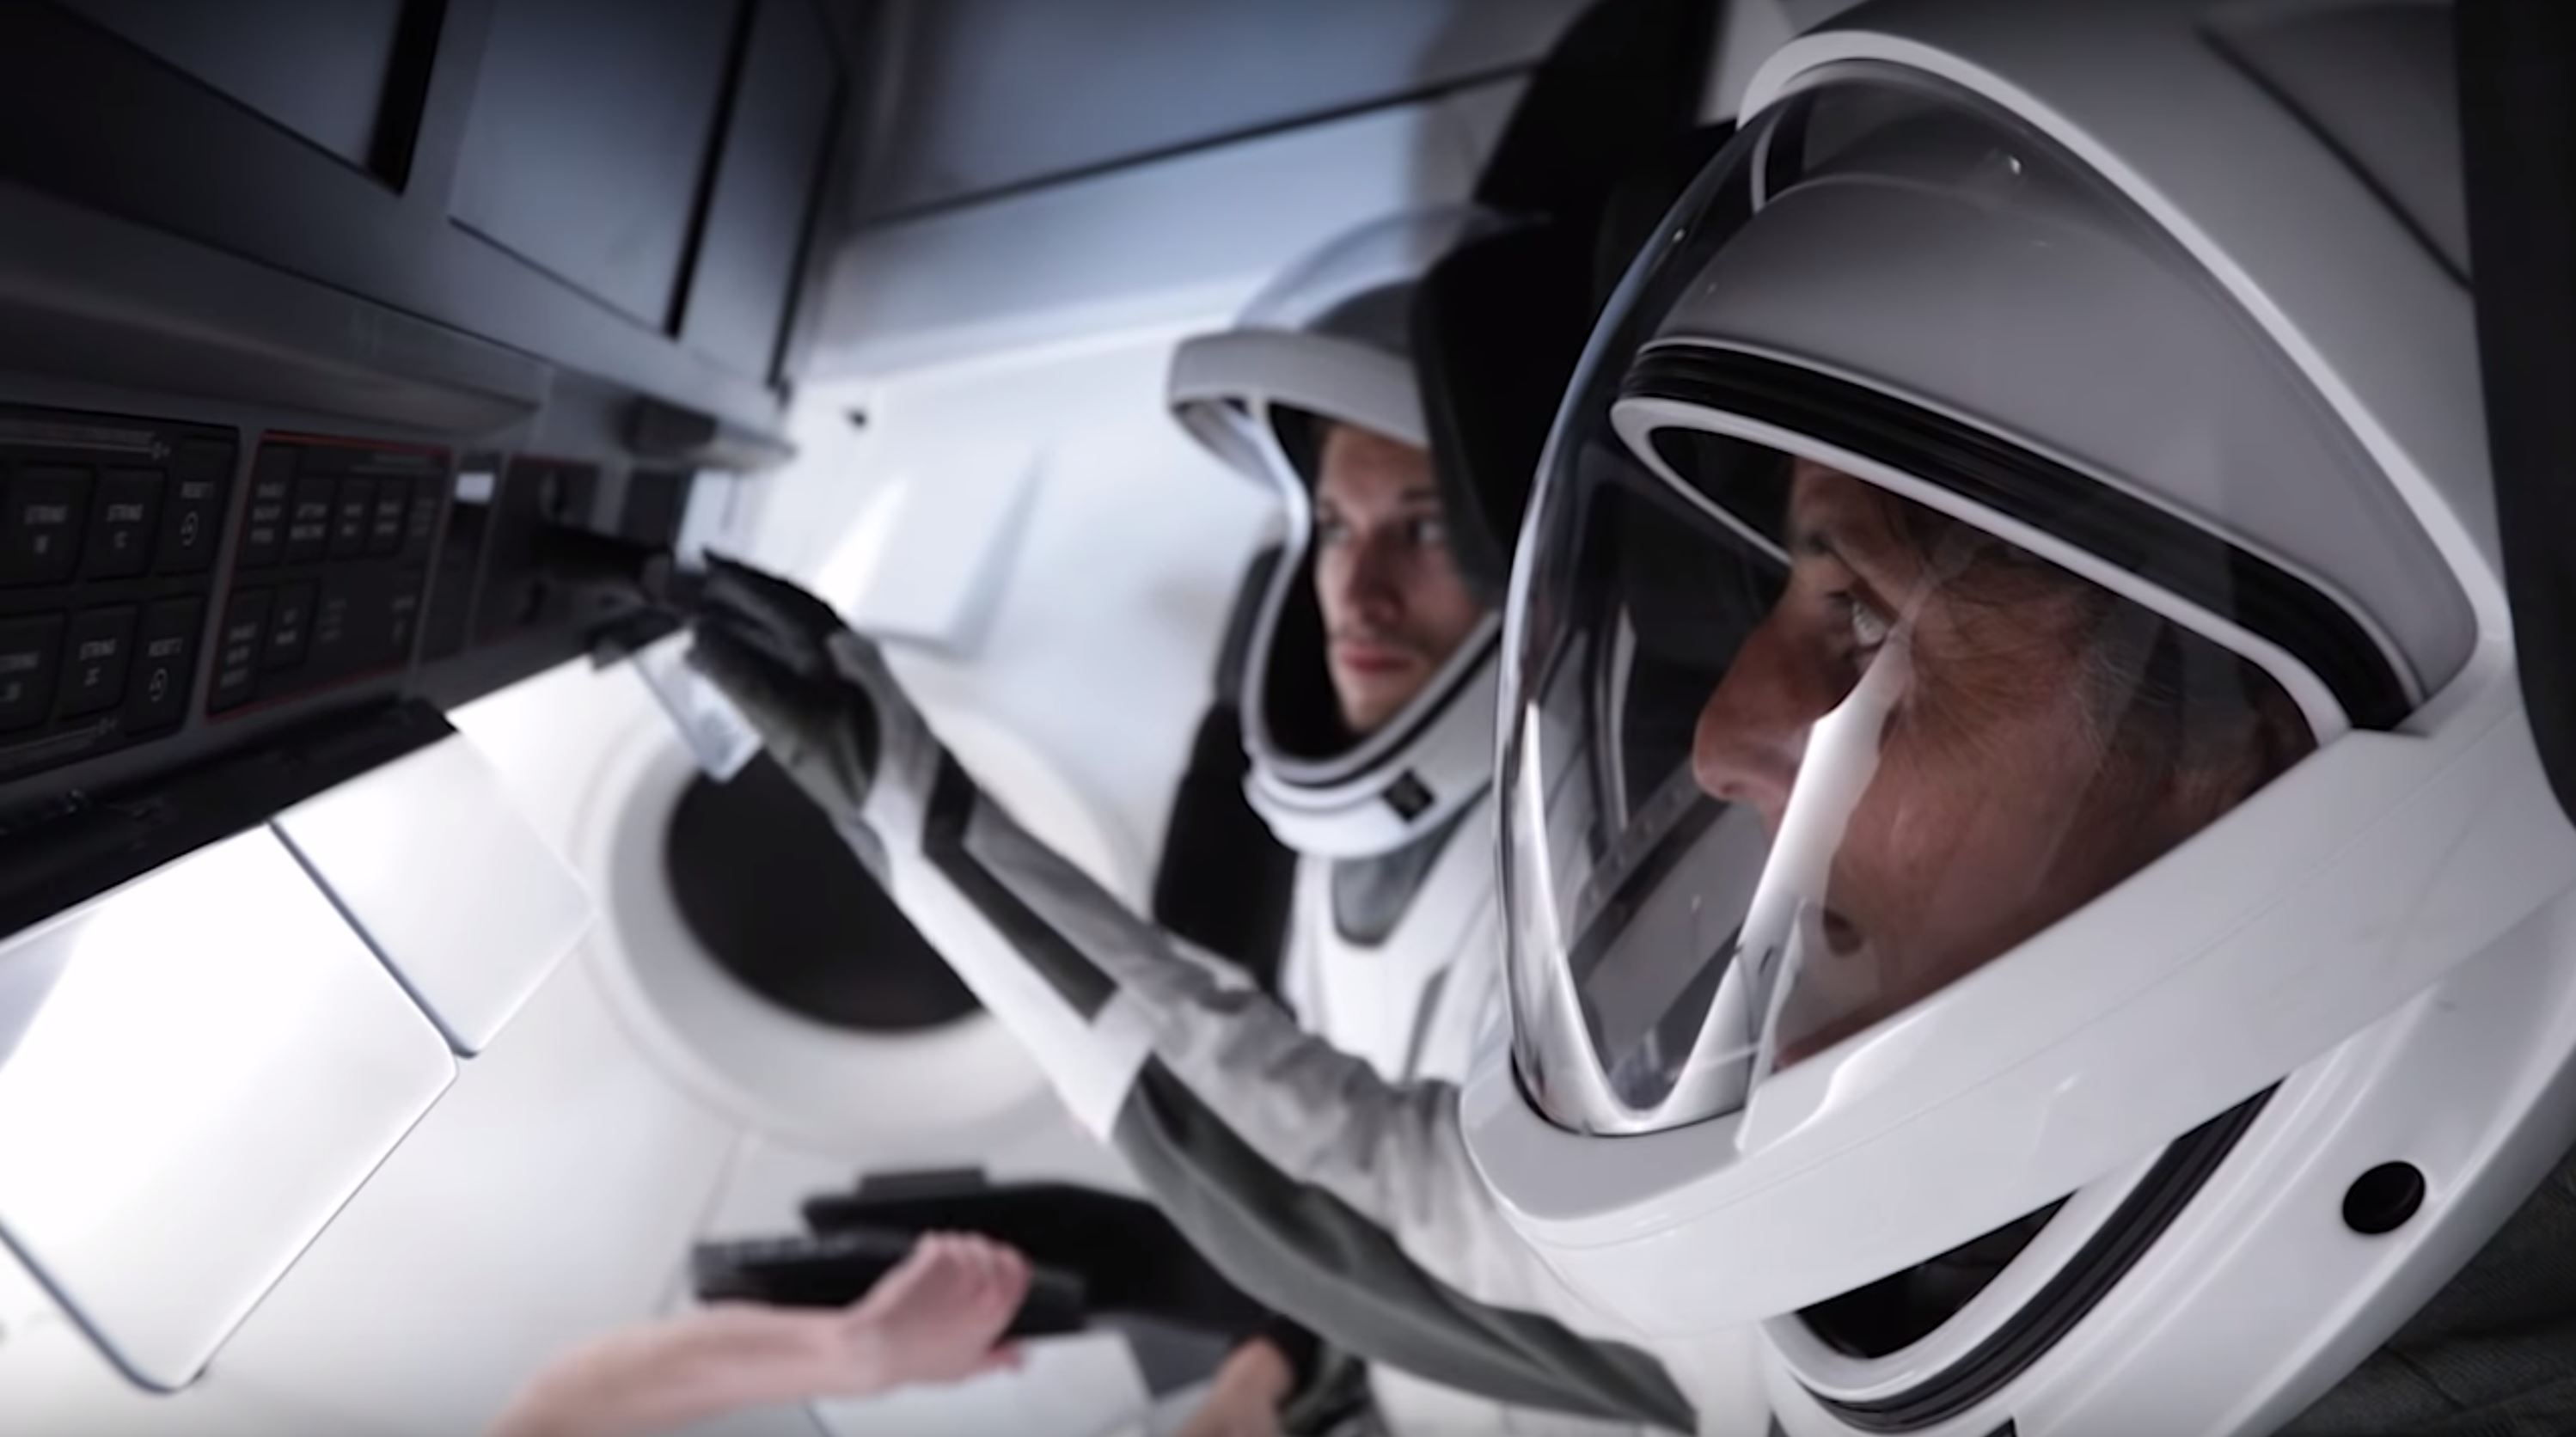 SpaceX Spacesuit Testing SpaceX 1